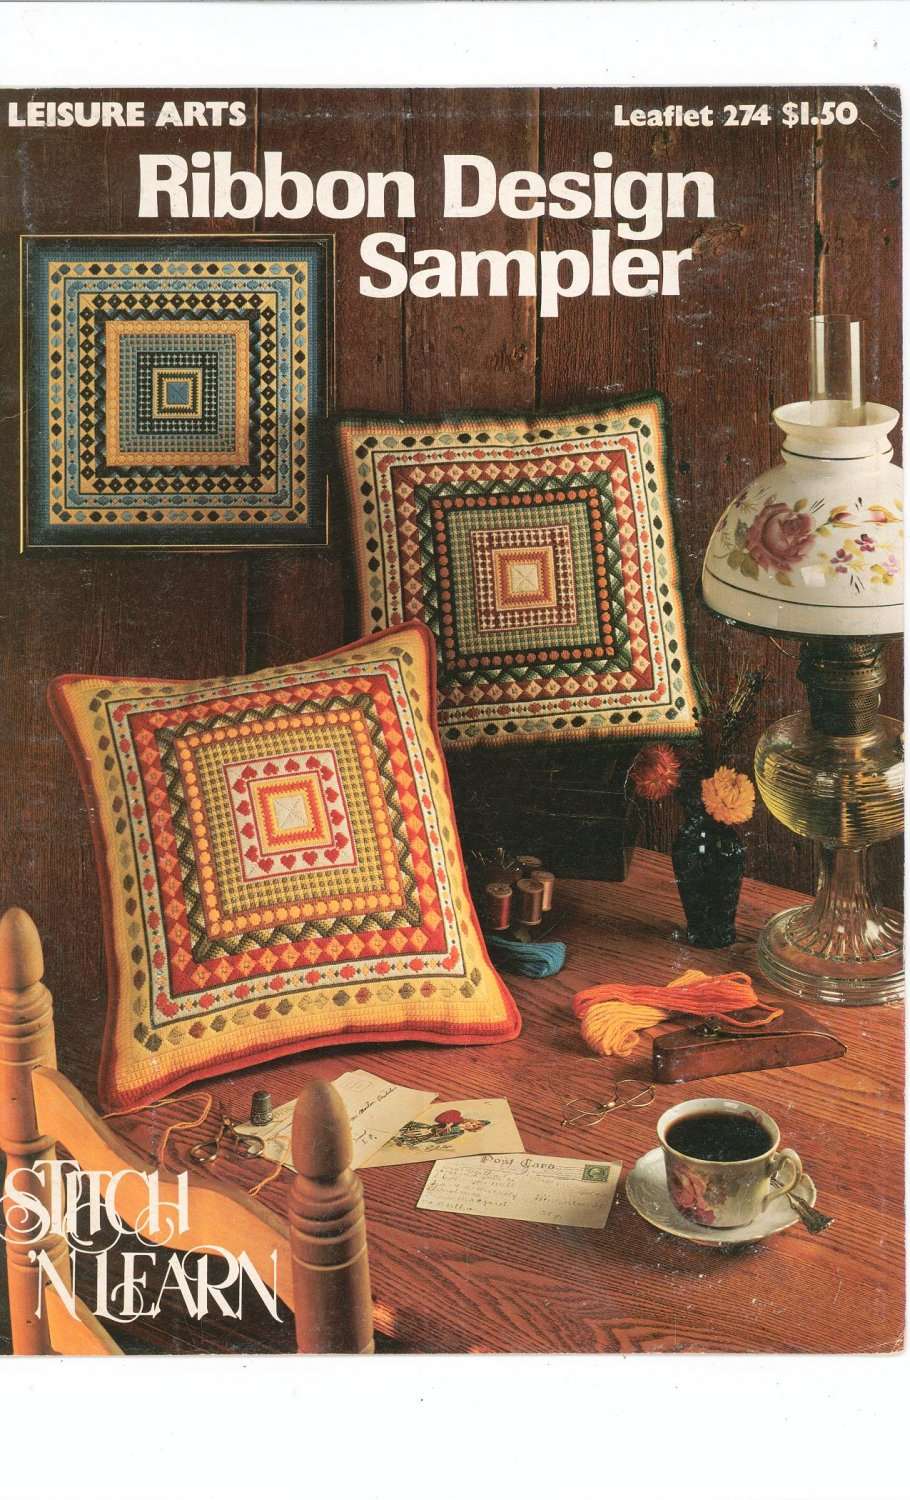 Ribbon Design Sampler Stitch 'N Learn Needlepoint Leisure Arts 274